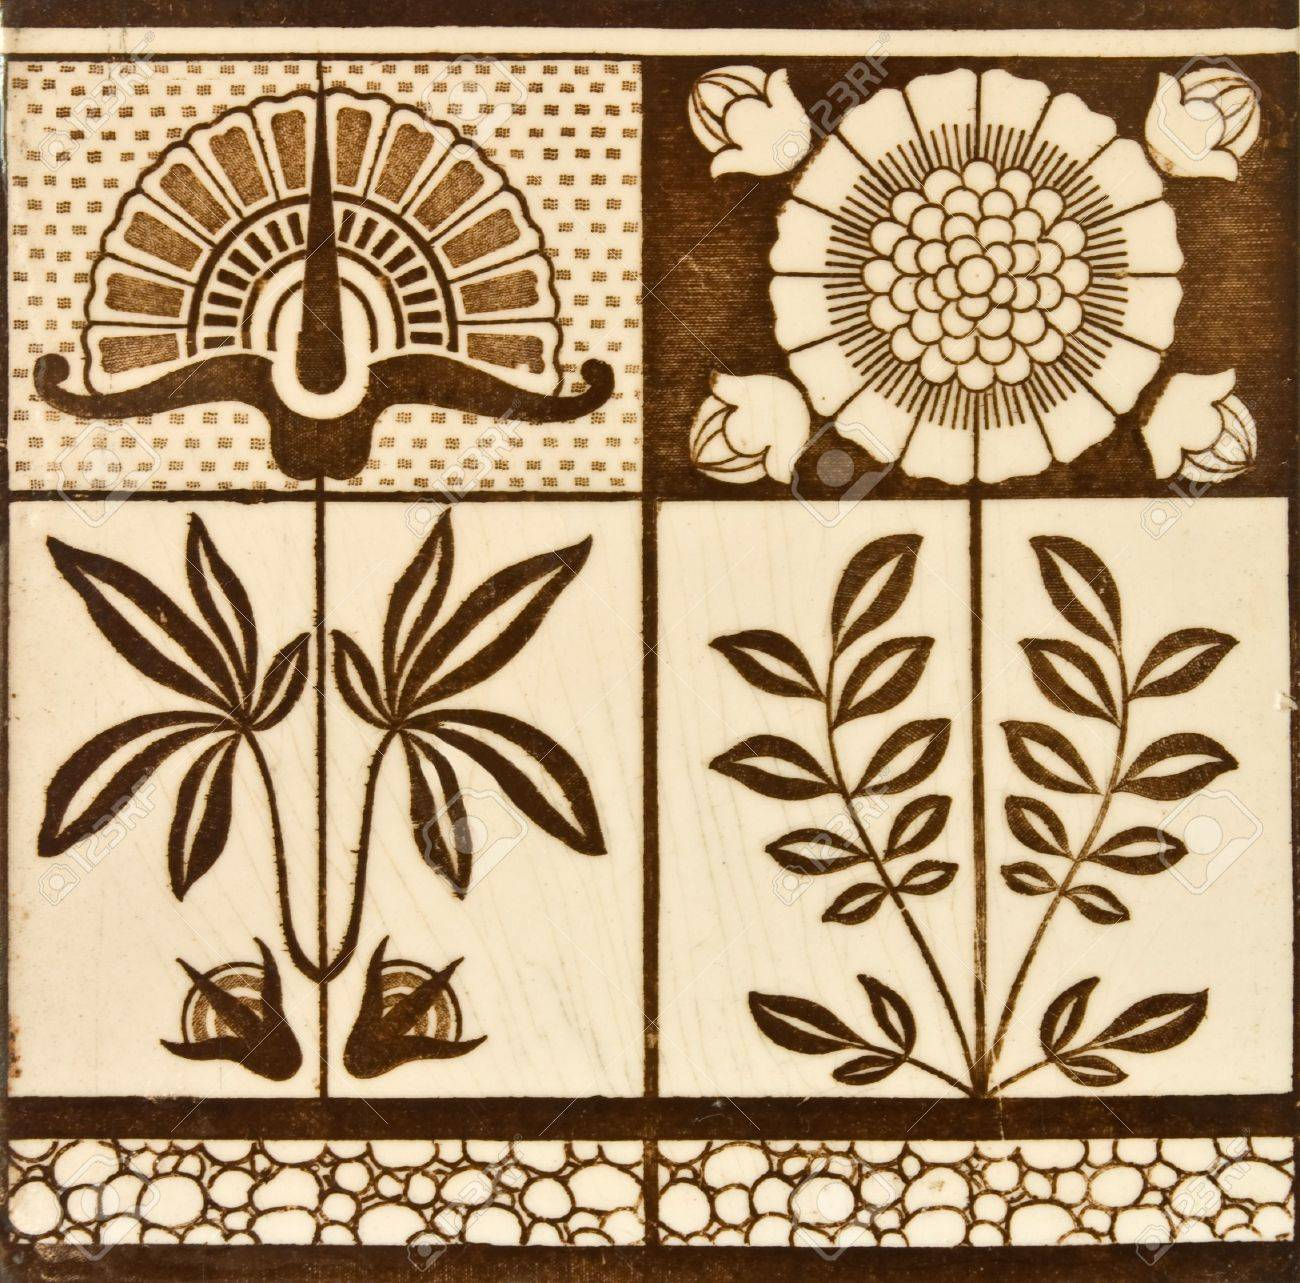 Arts and crafts tiles - Panel Design Tile From The Arts Crafts Period C1890 Stock Photo 3729646